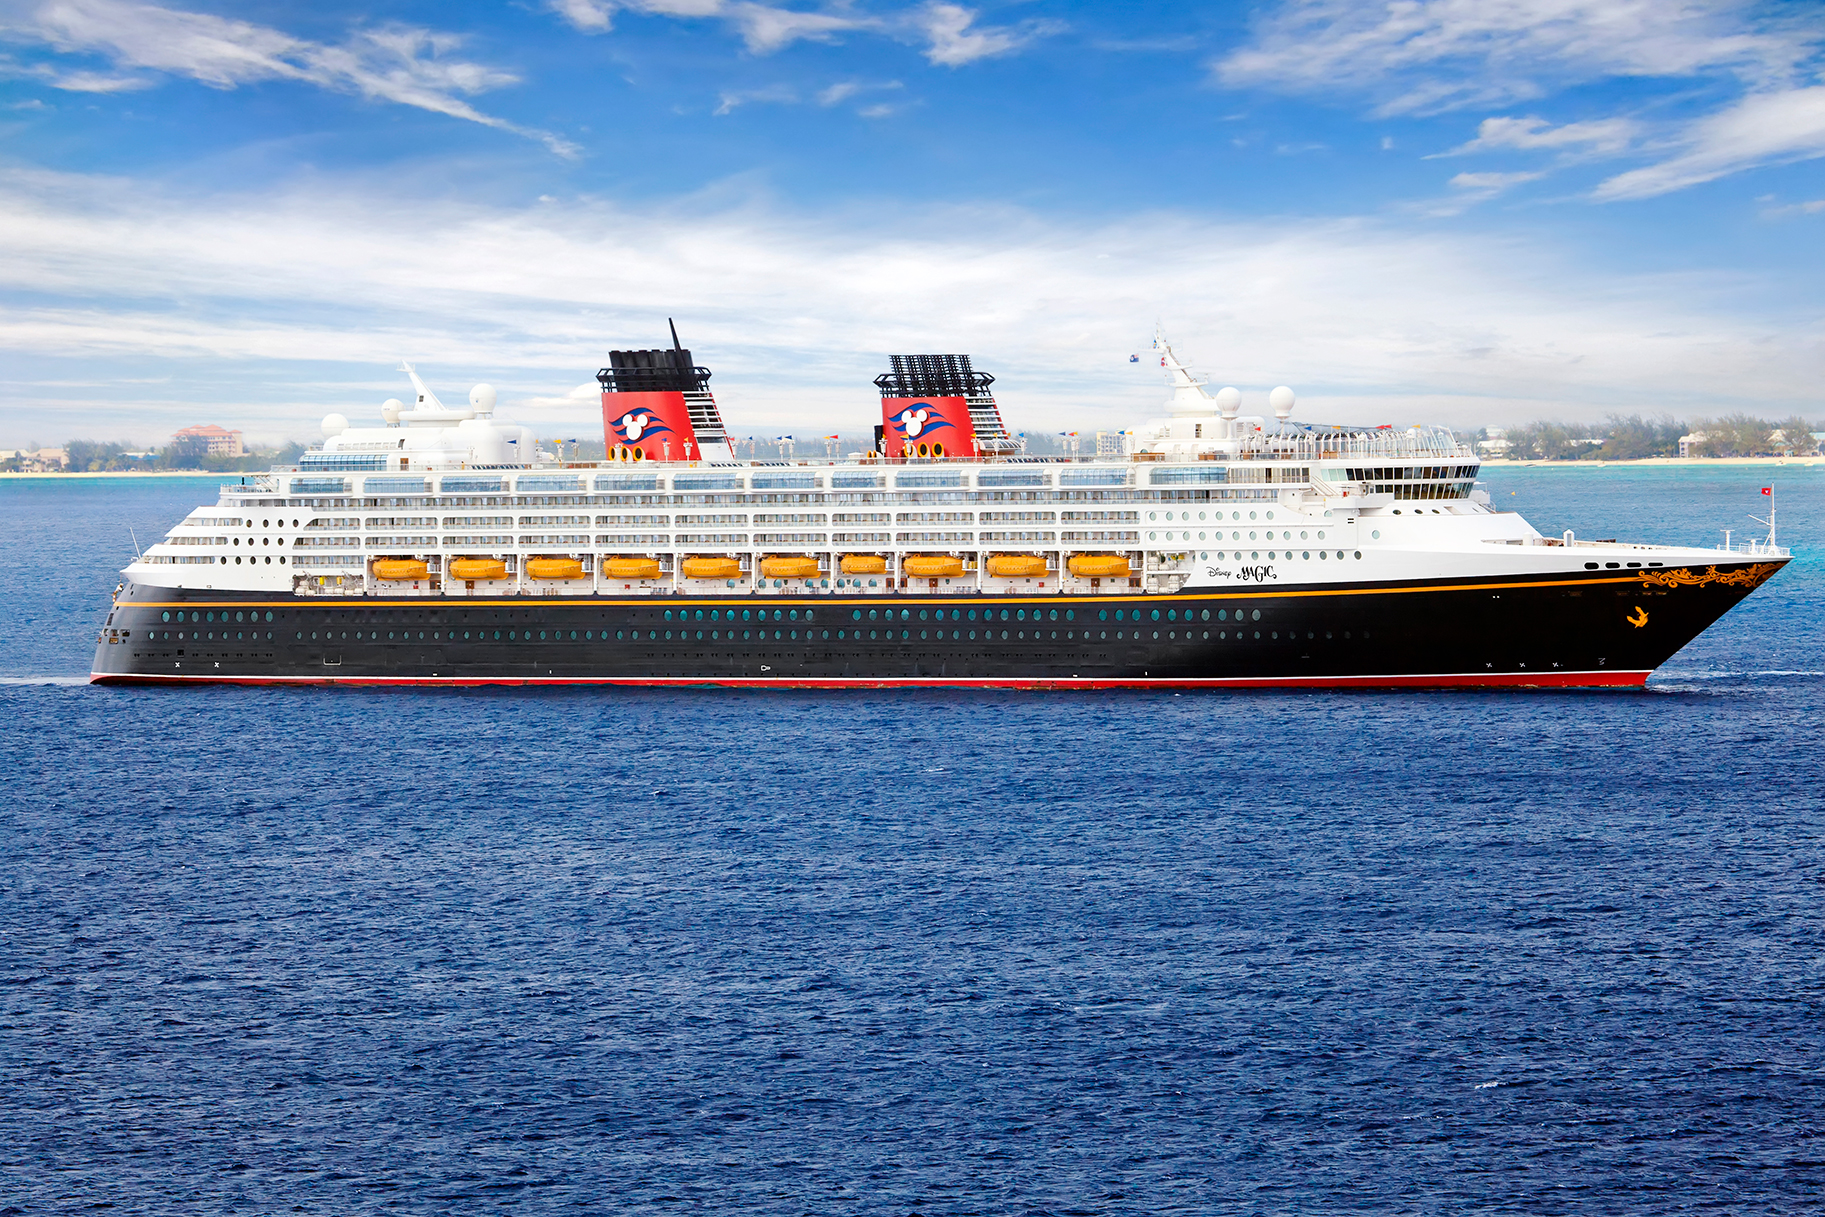 Family With Pregnant Woman Kicked Off Disney Cruise | JetSet